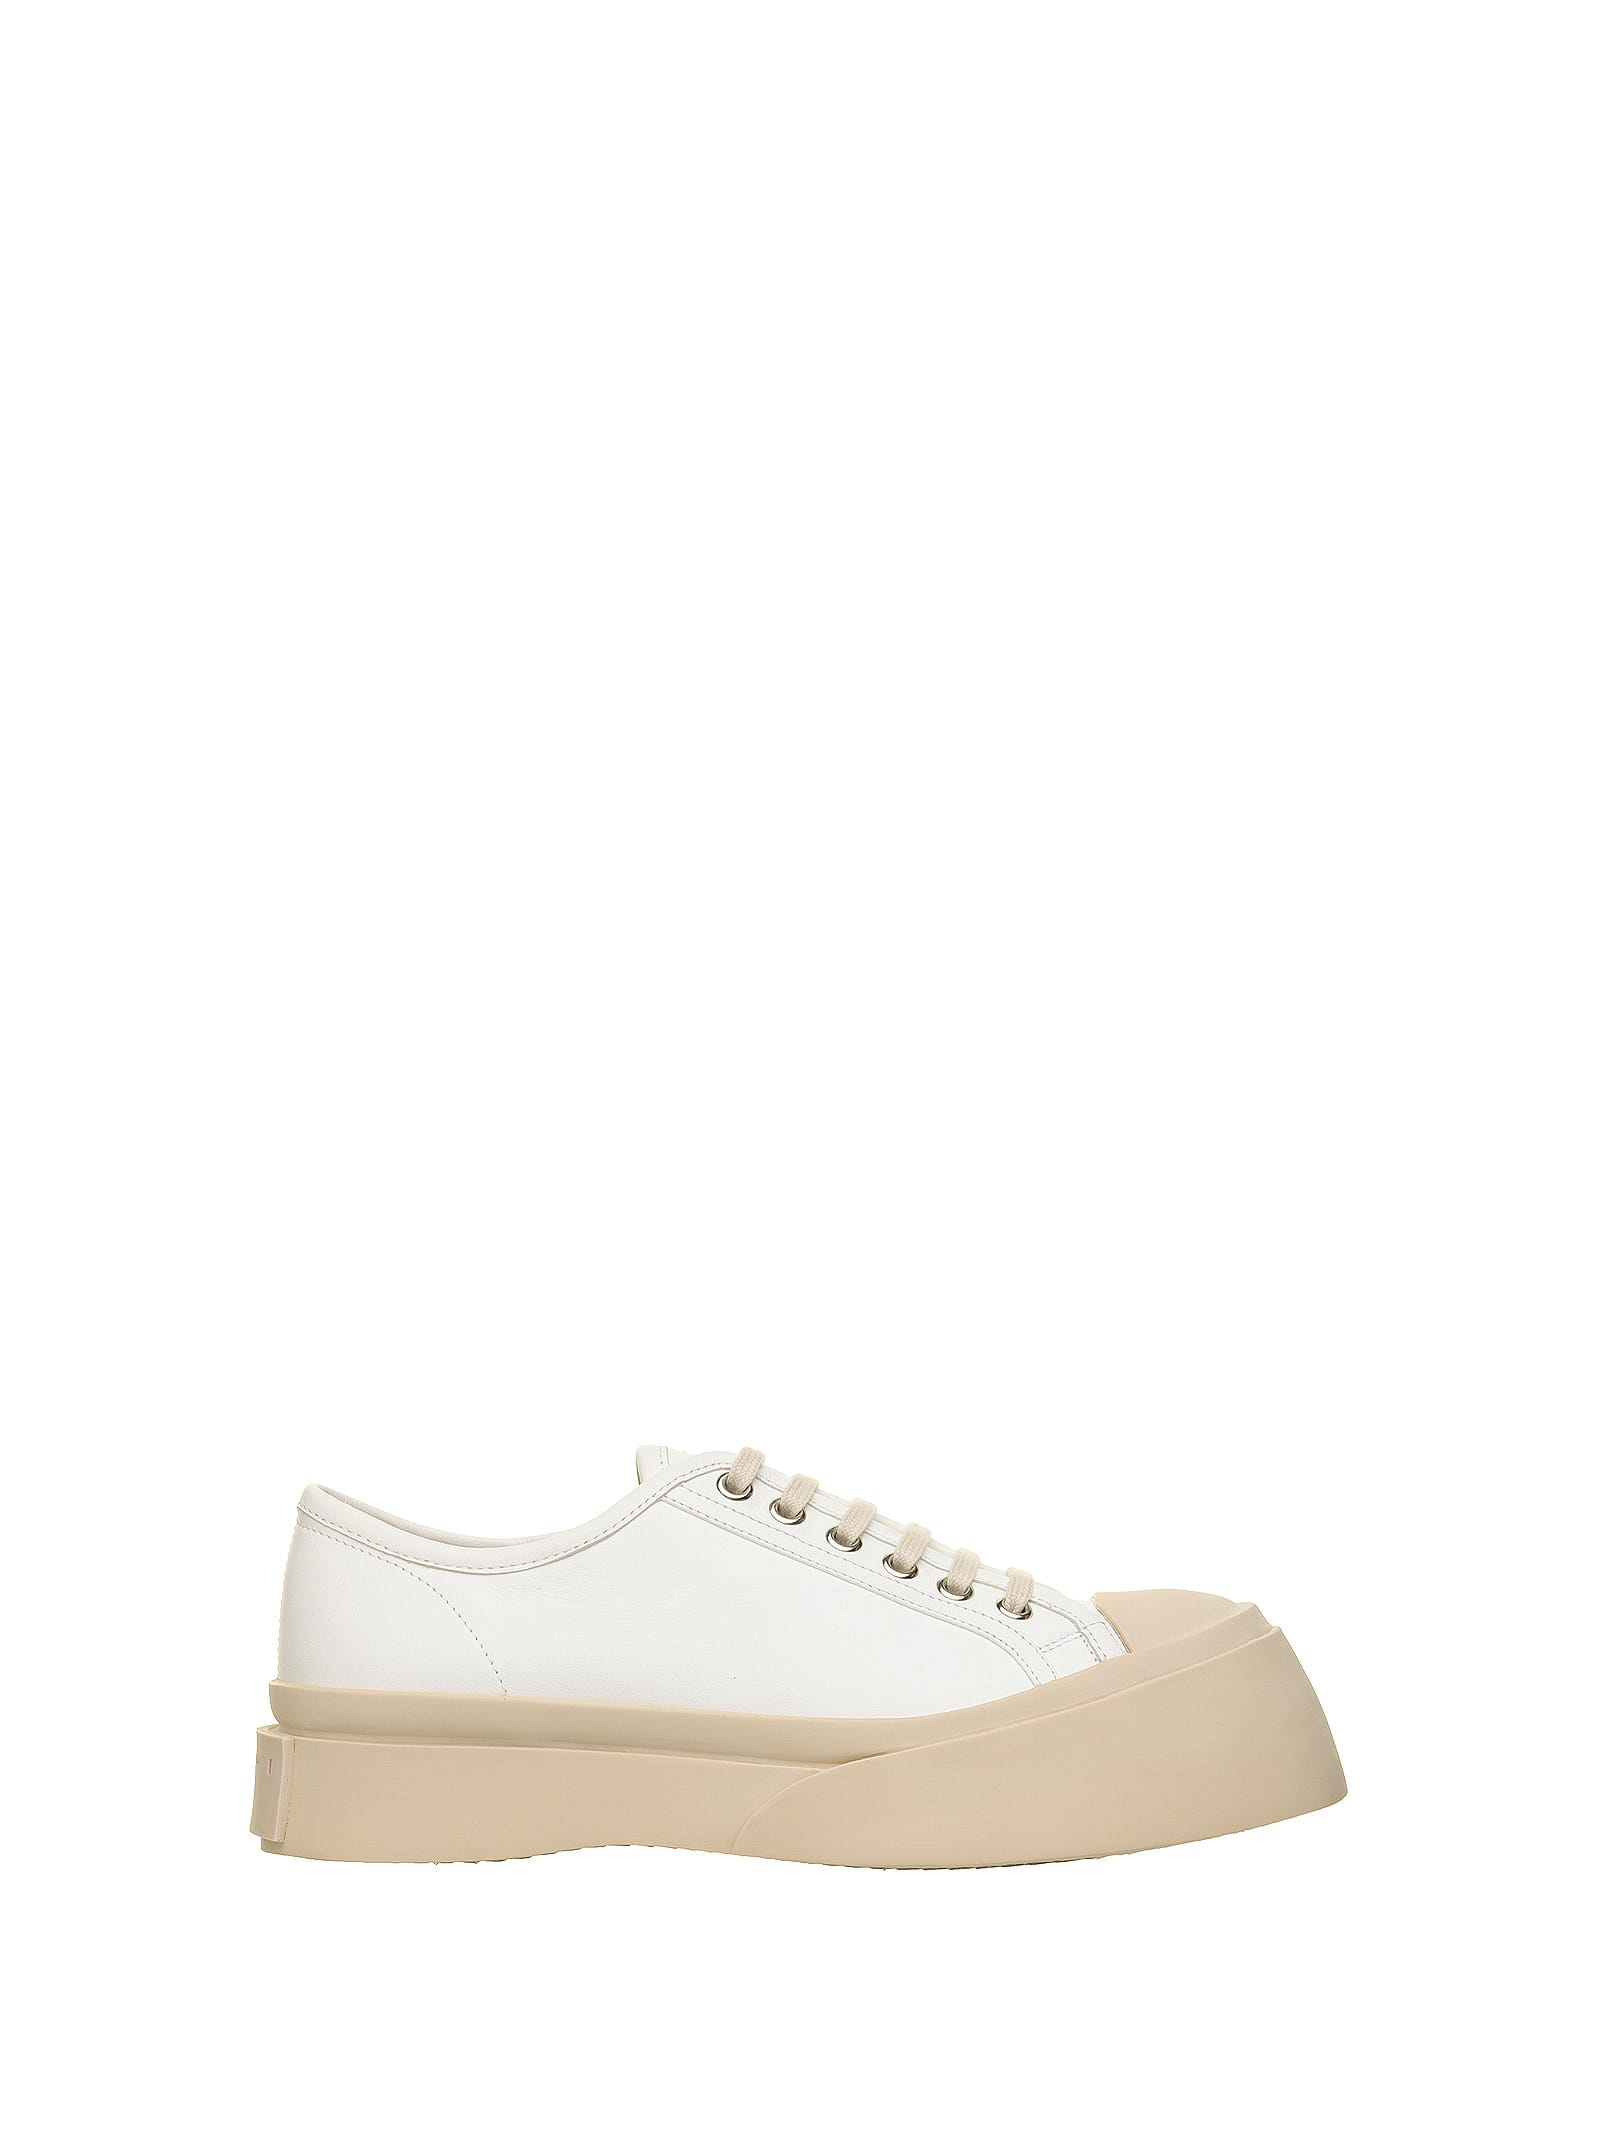 MARNI LOW TOP PABLO SNEAKERS